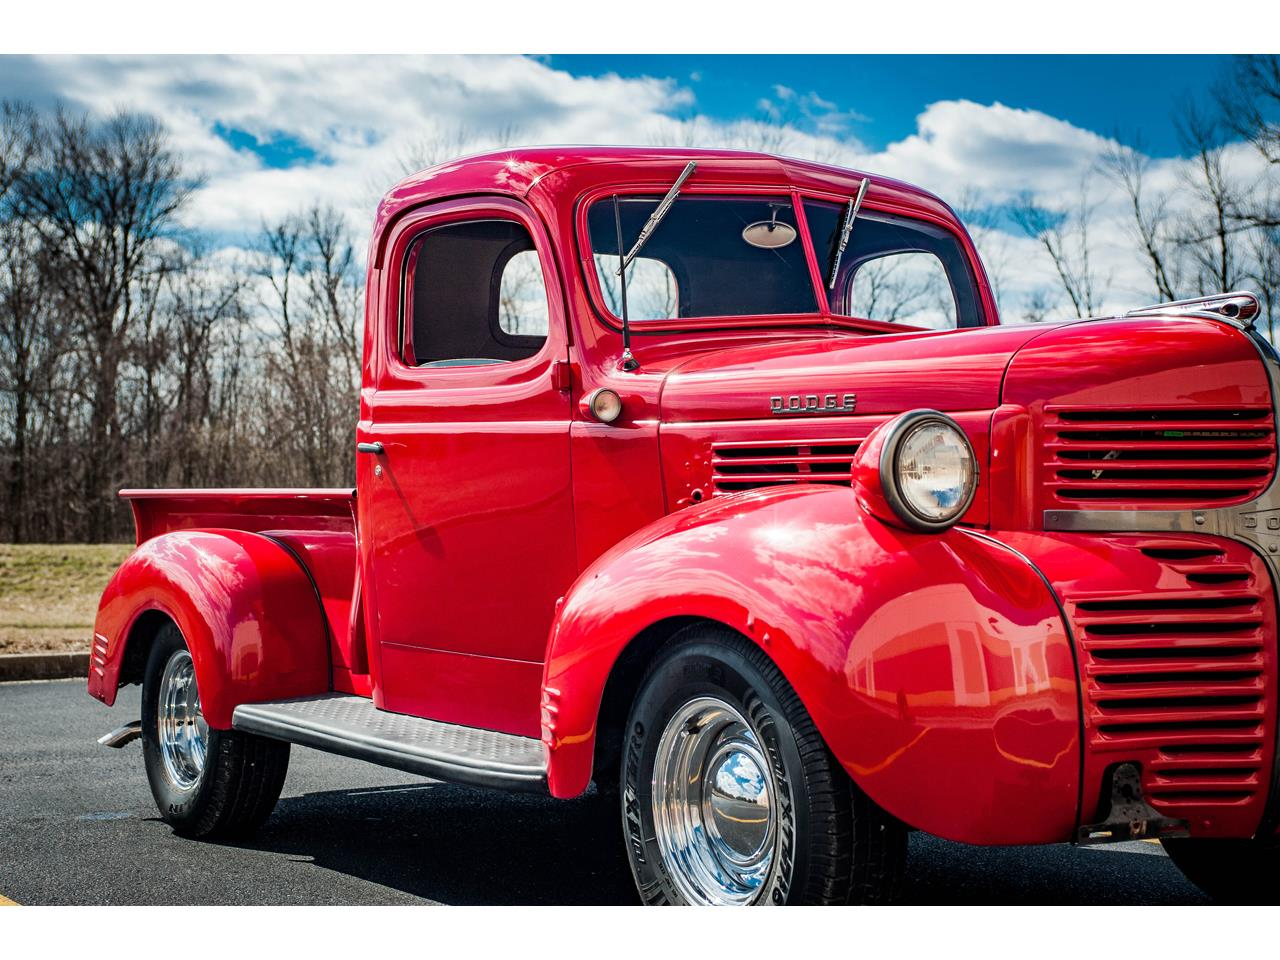 Large Picture of Classic 1945 Dodge Pickup located in O'Fallon Illinois - $25,500.00 Offered by Gateway Classic Cars - St. Louis - QB7O